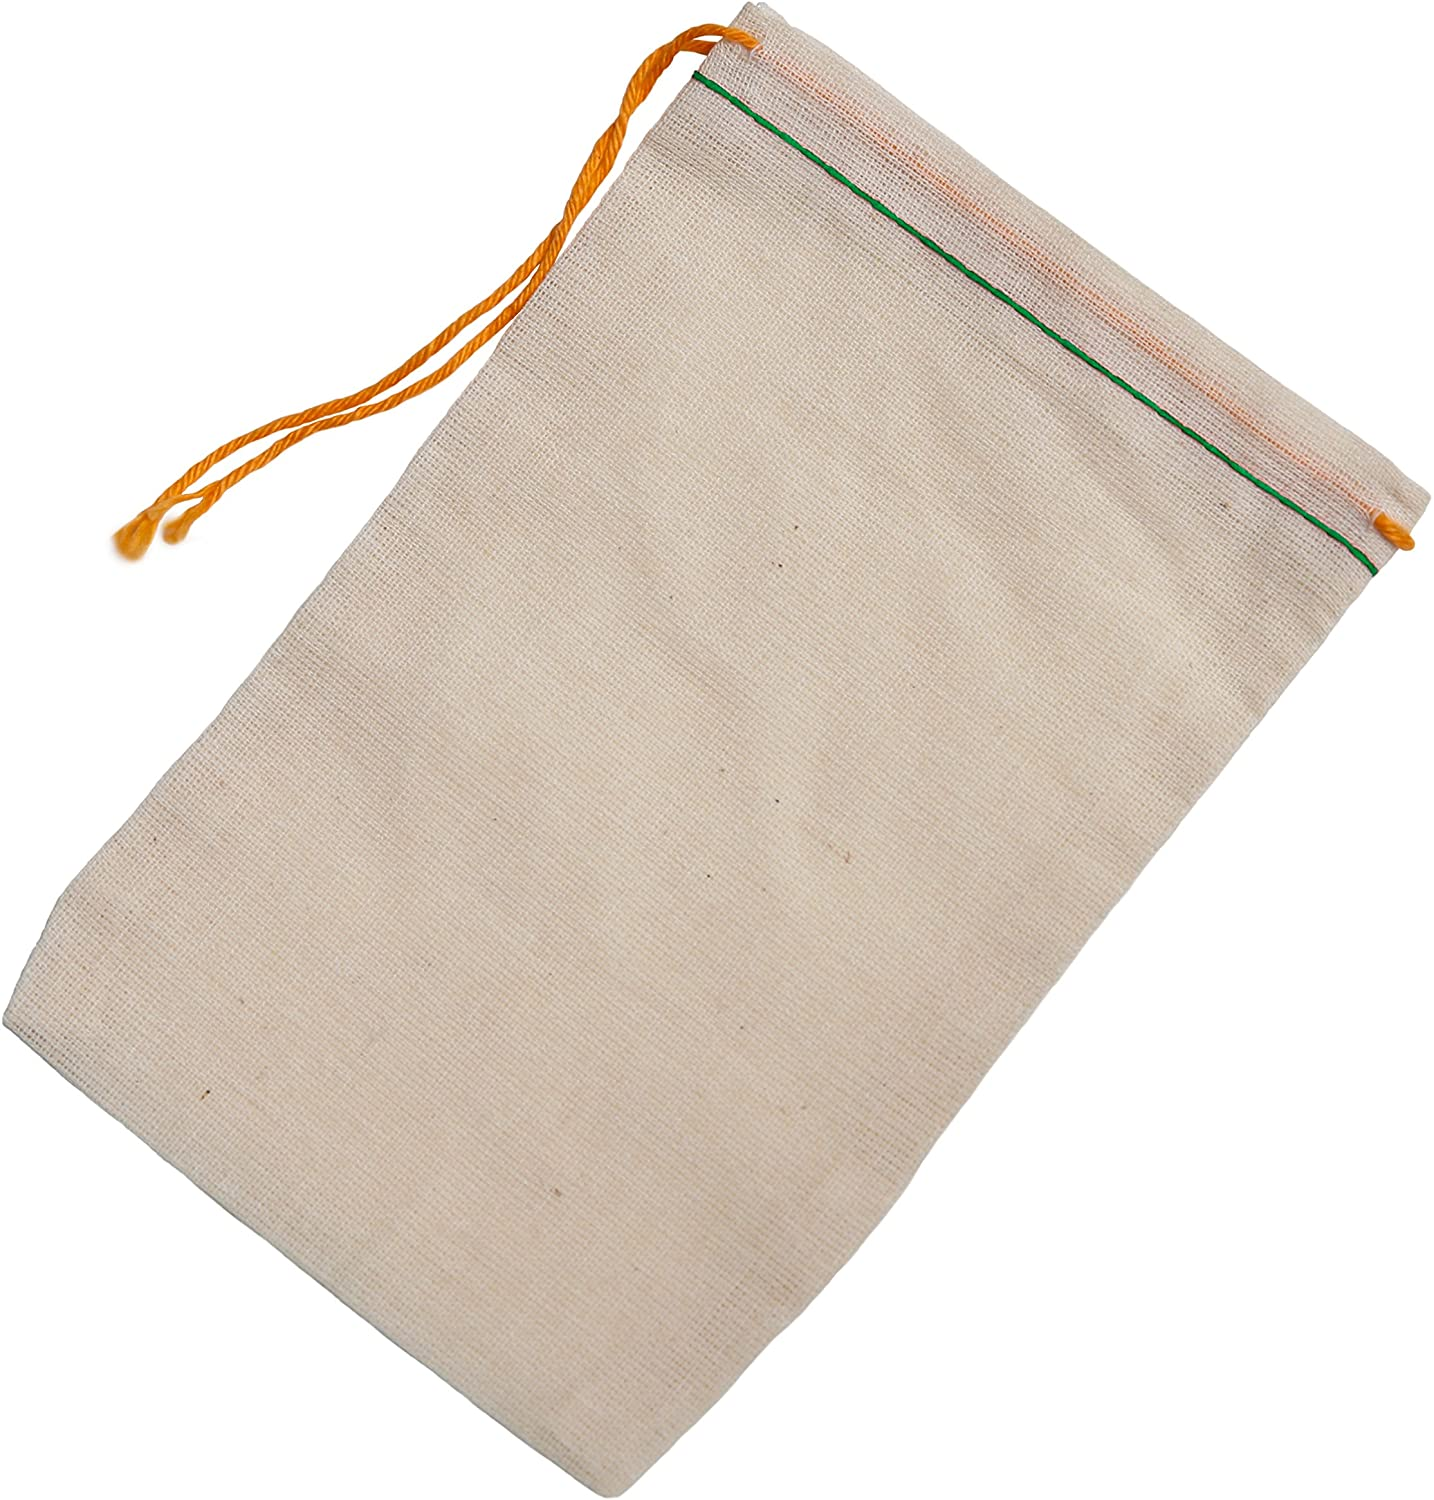 Cotton Muslin Bags 25 Count (2.75 x 3.75 inches) Green Hem Orange Drawstring, Made with 100% Cotton in The USA by Celestial Gifts